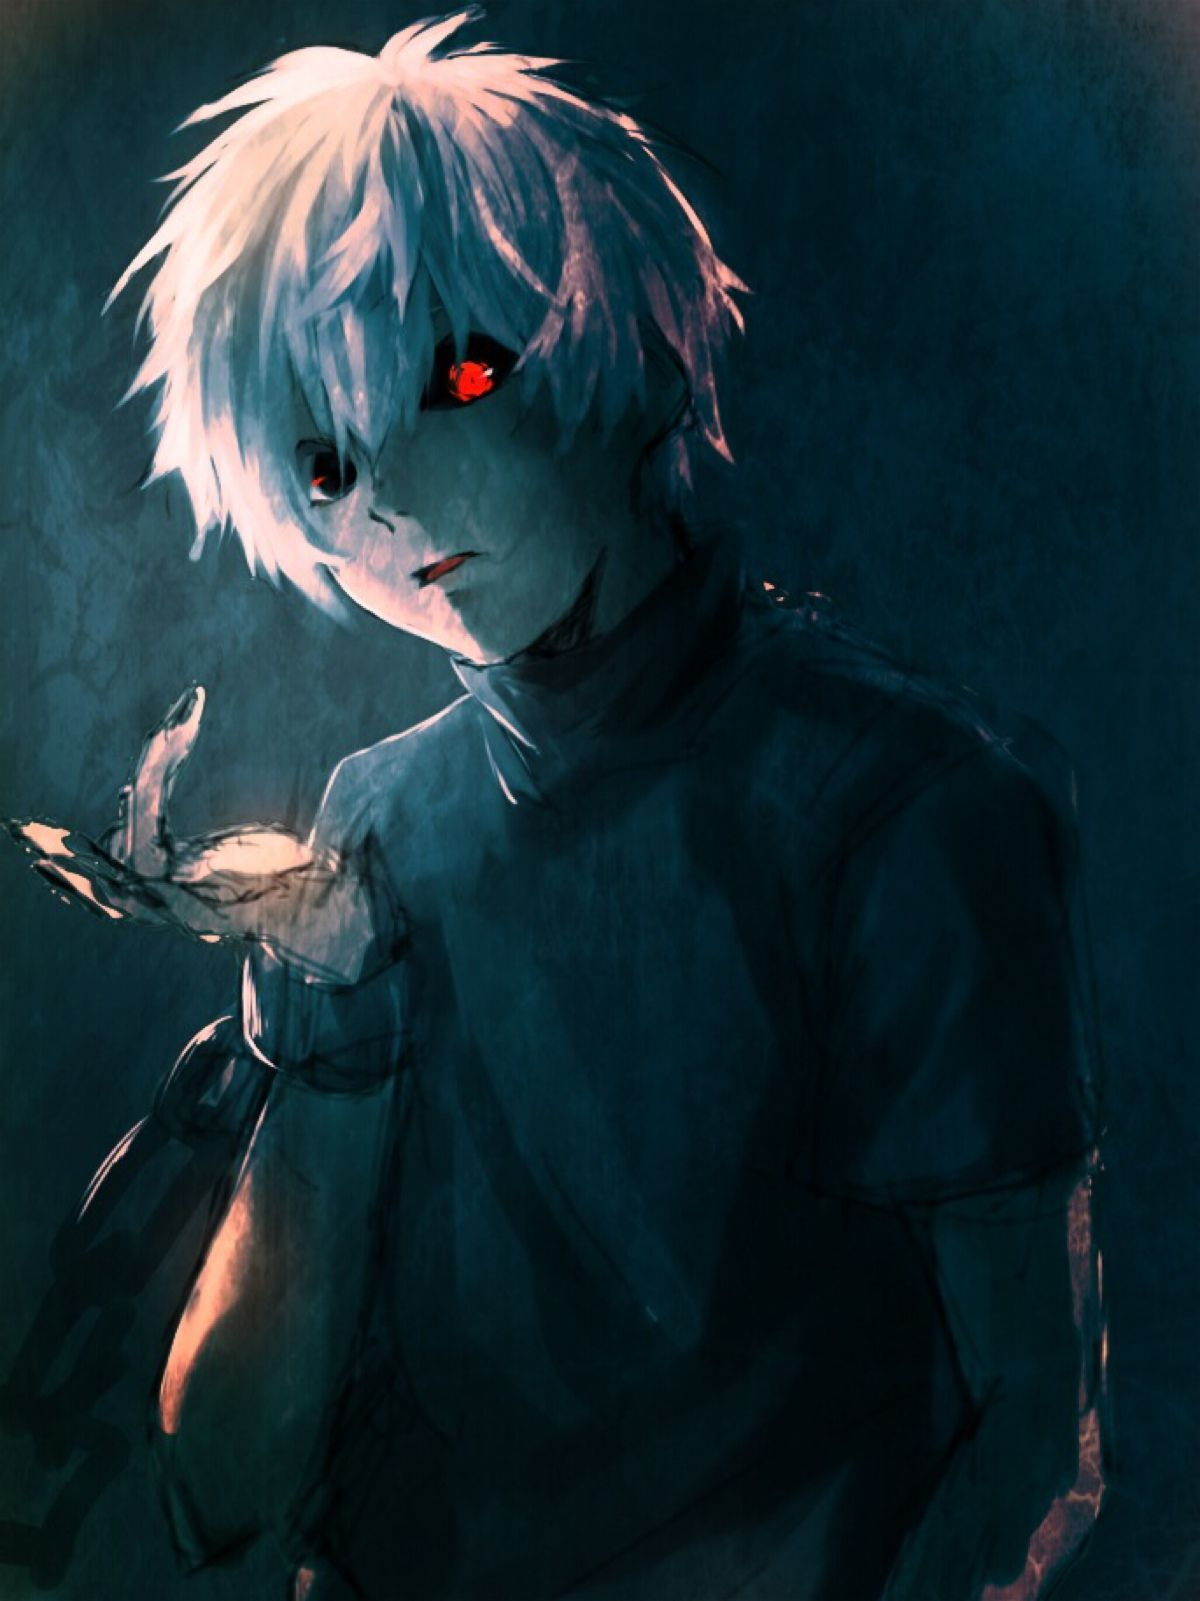 Top 10 Male Anime Characters Tokyo ghoul, Anime